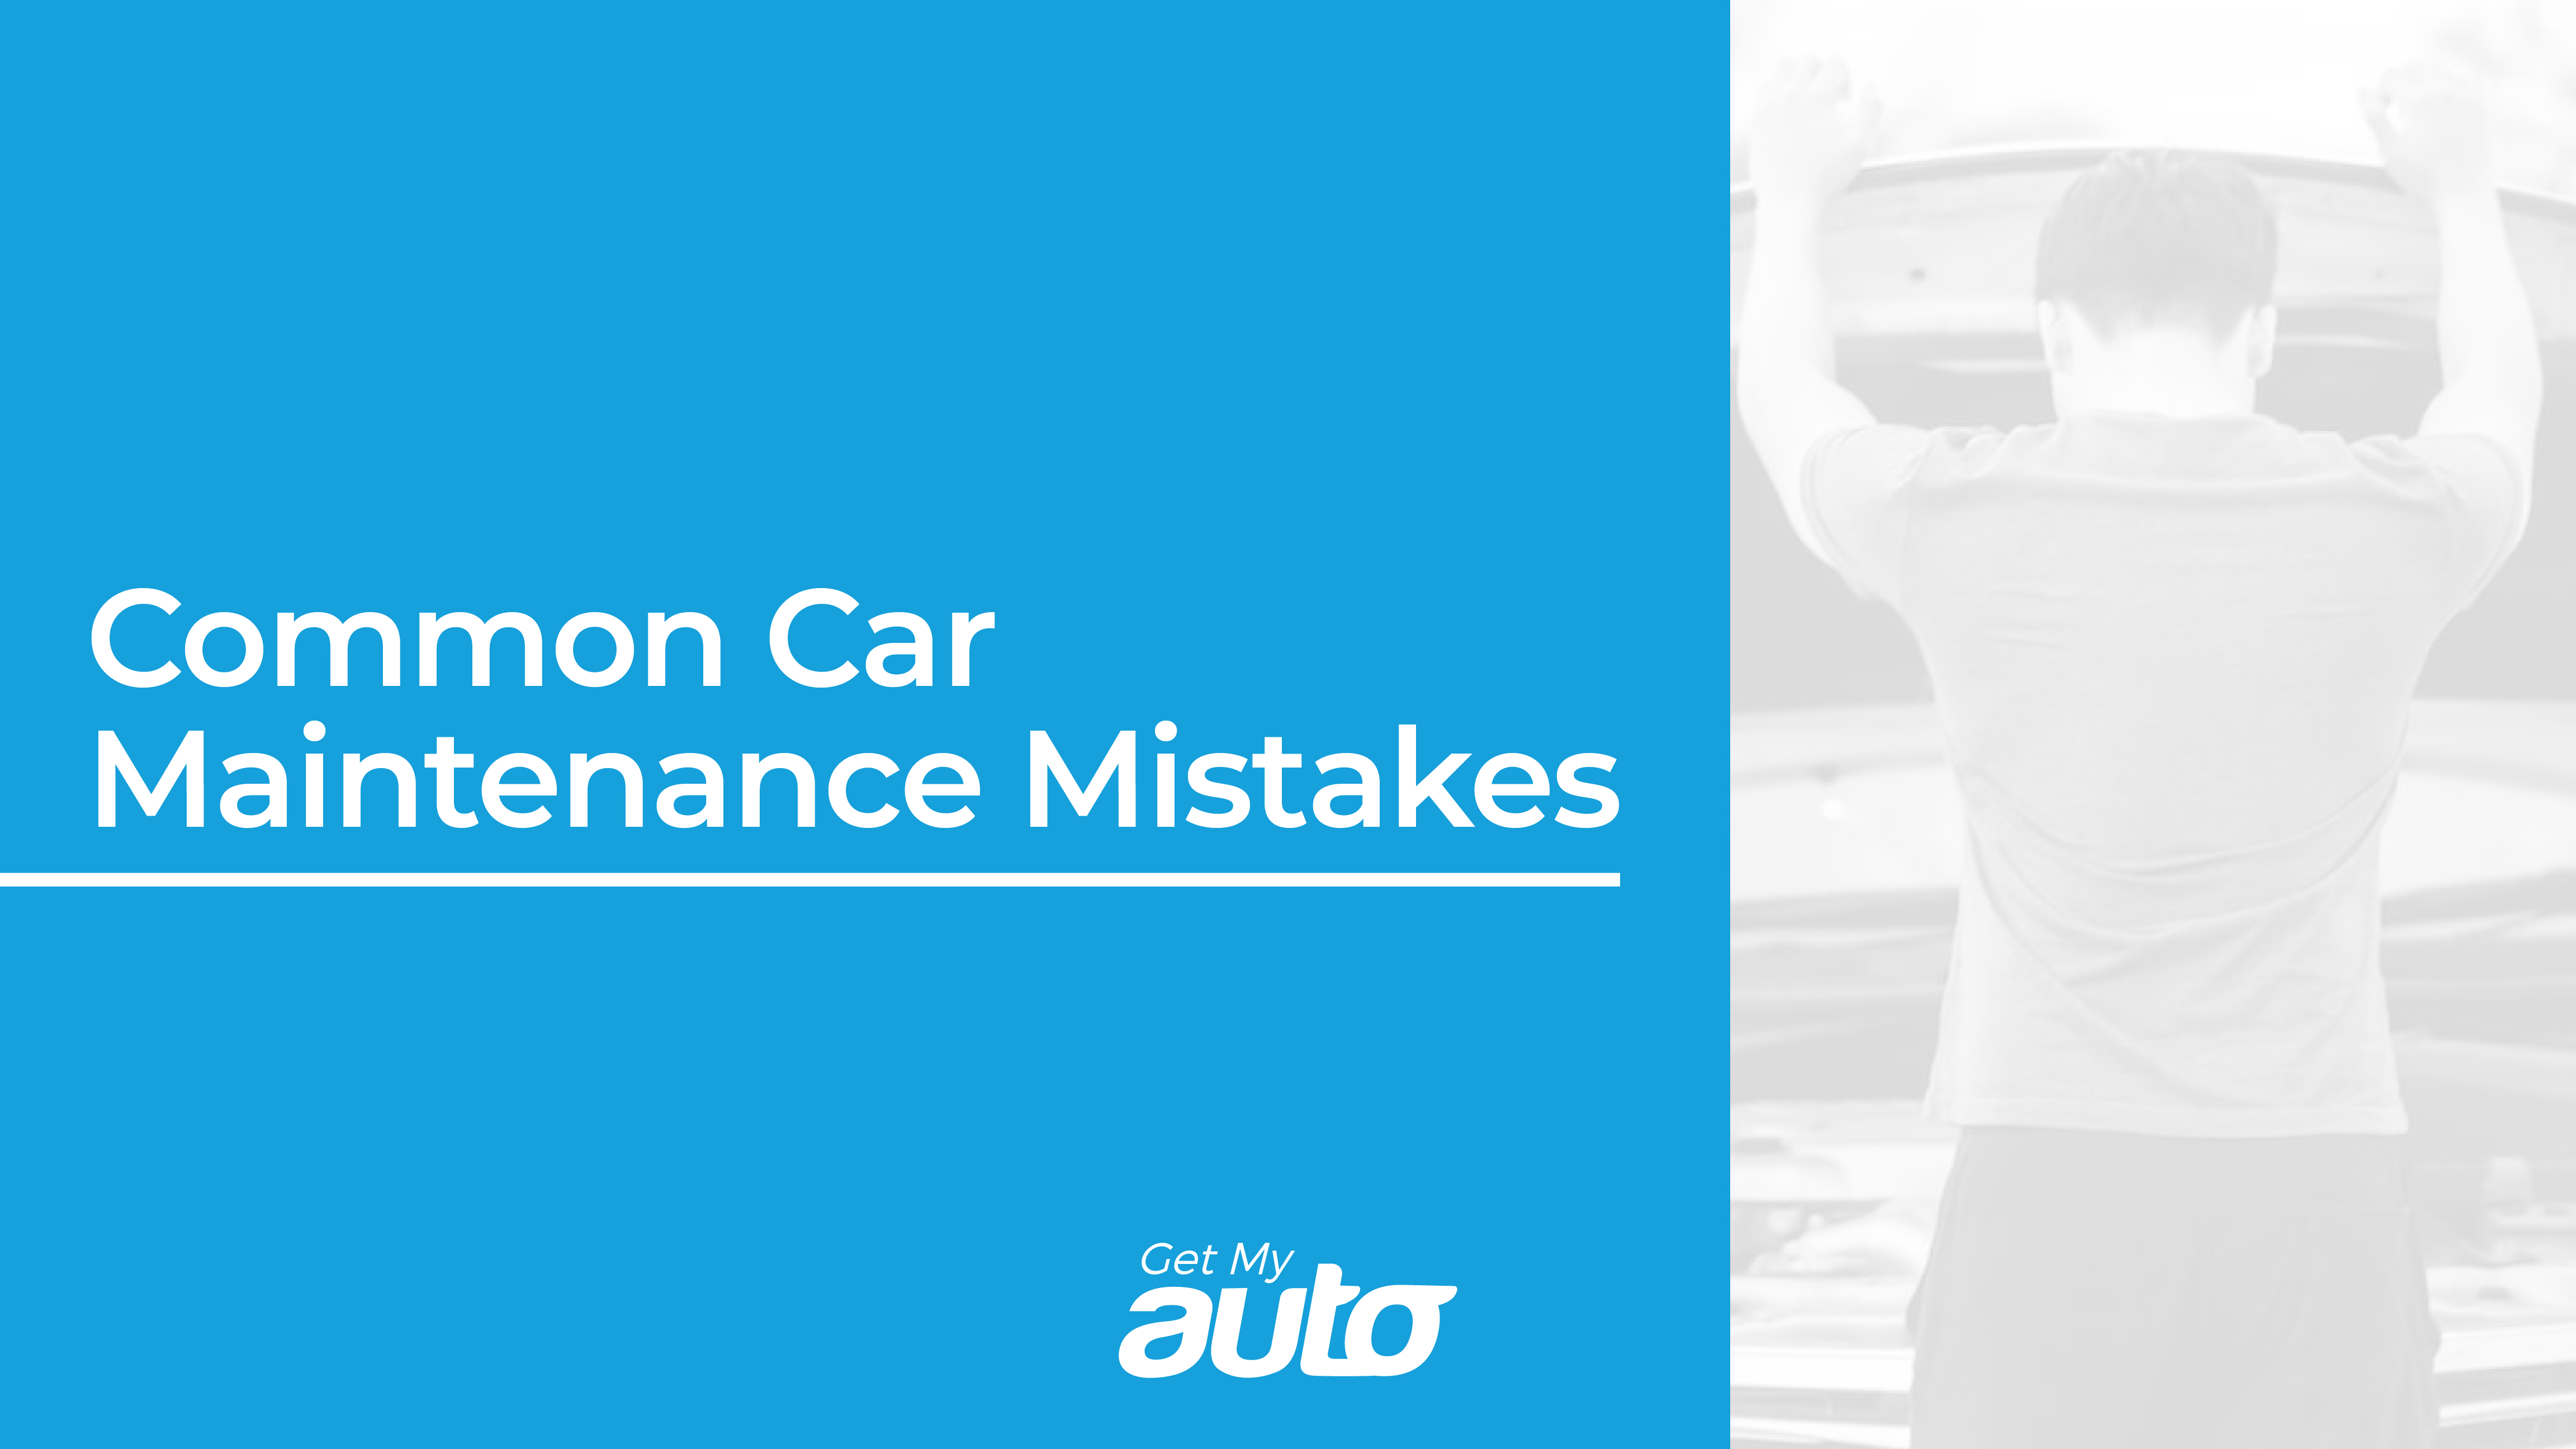 Common Car Maintenance Mistakes GetMyAuto